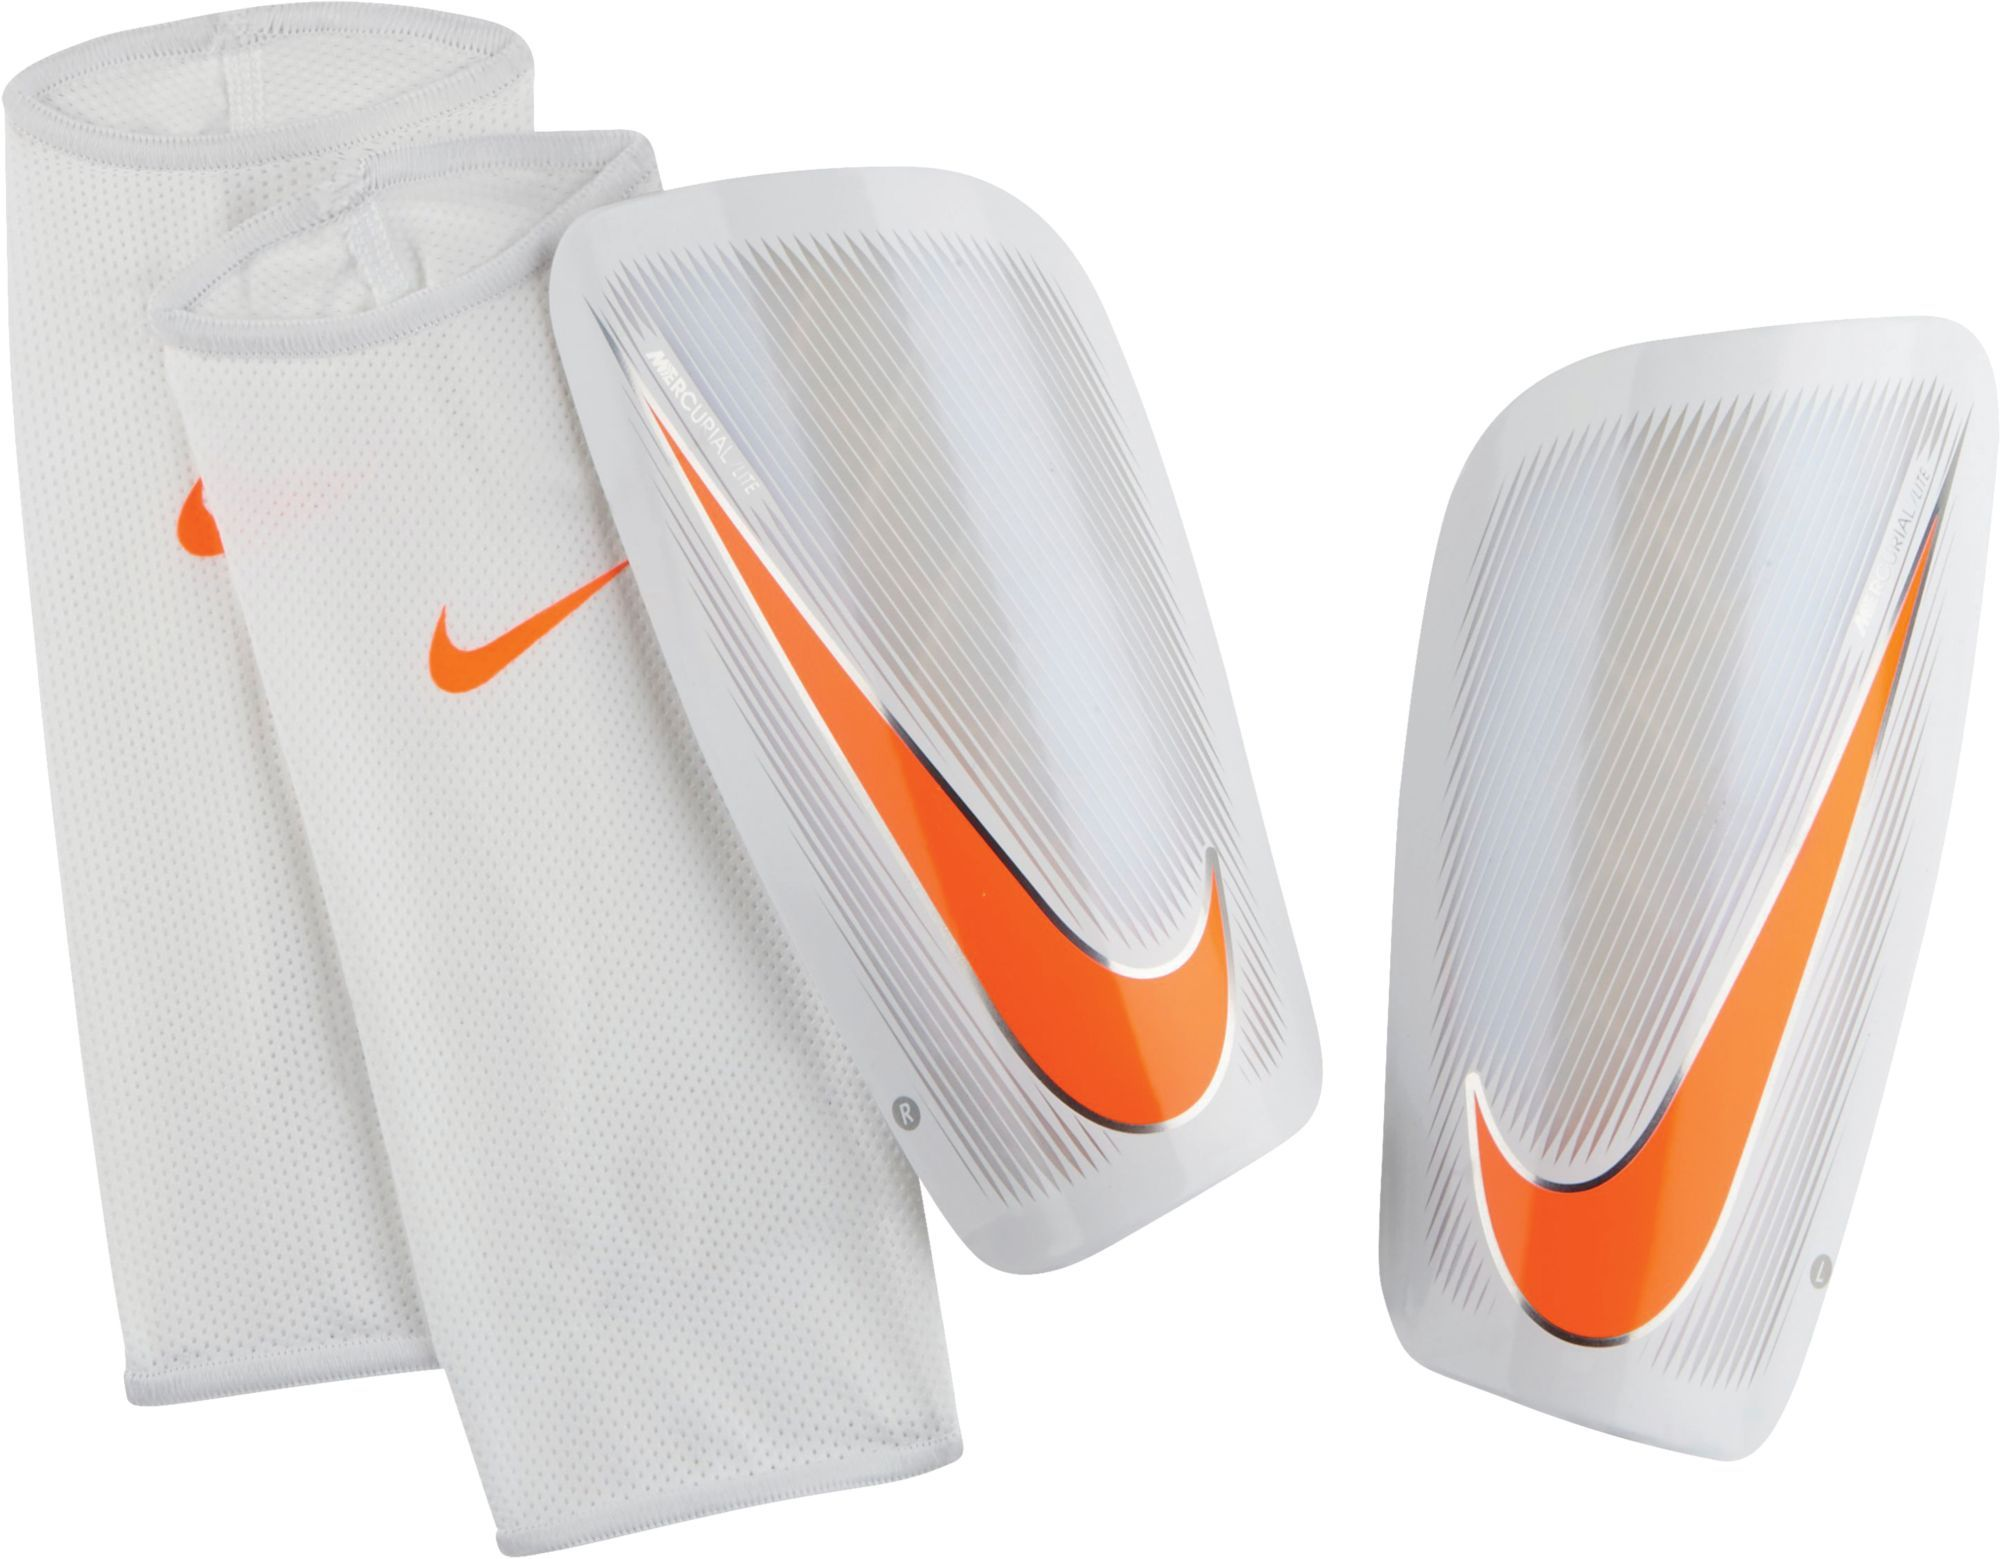 bc4dbe8c450 Nike Adult Mercurial Lite Soccer Shin Guards in 2019